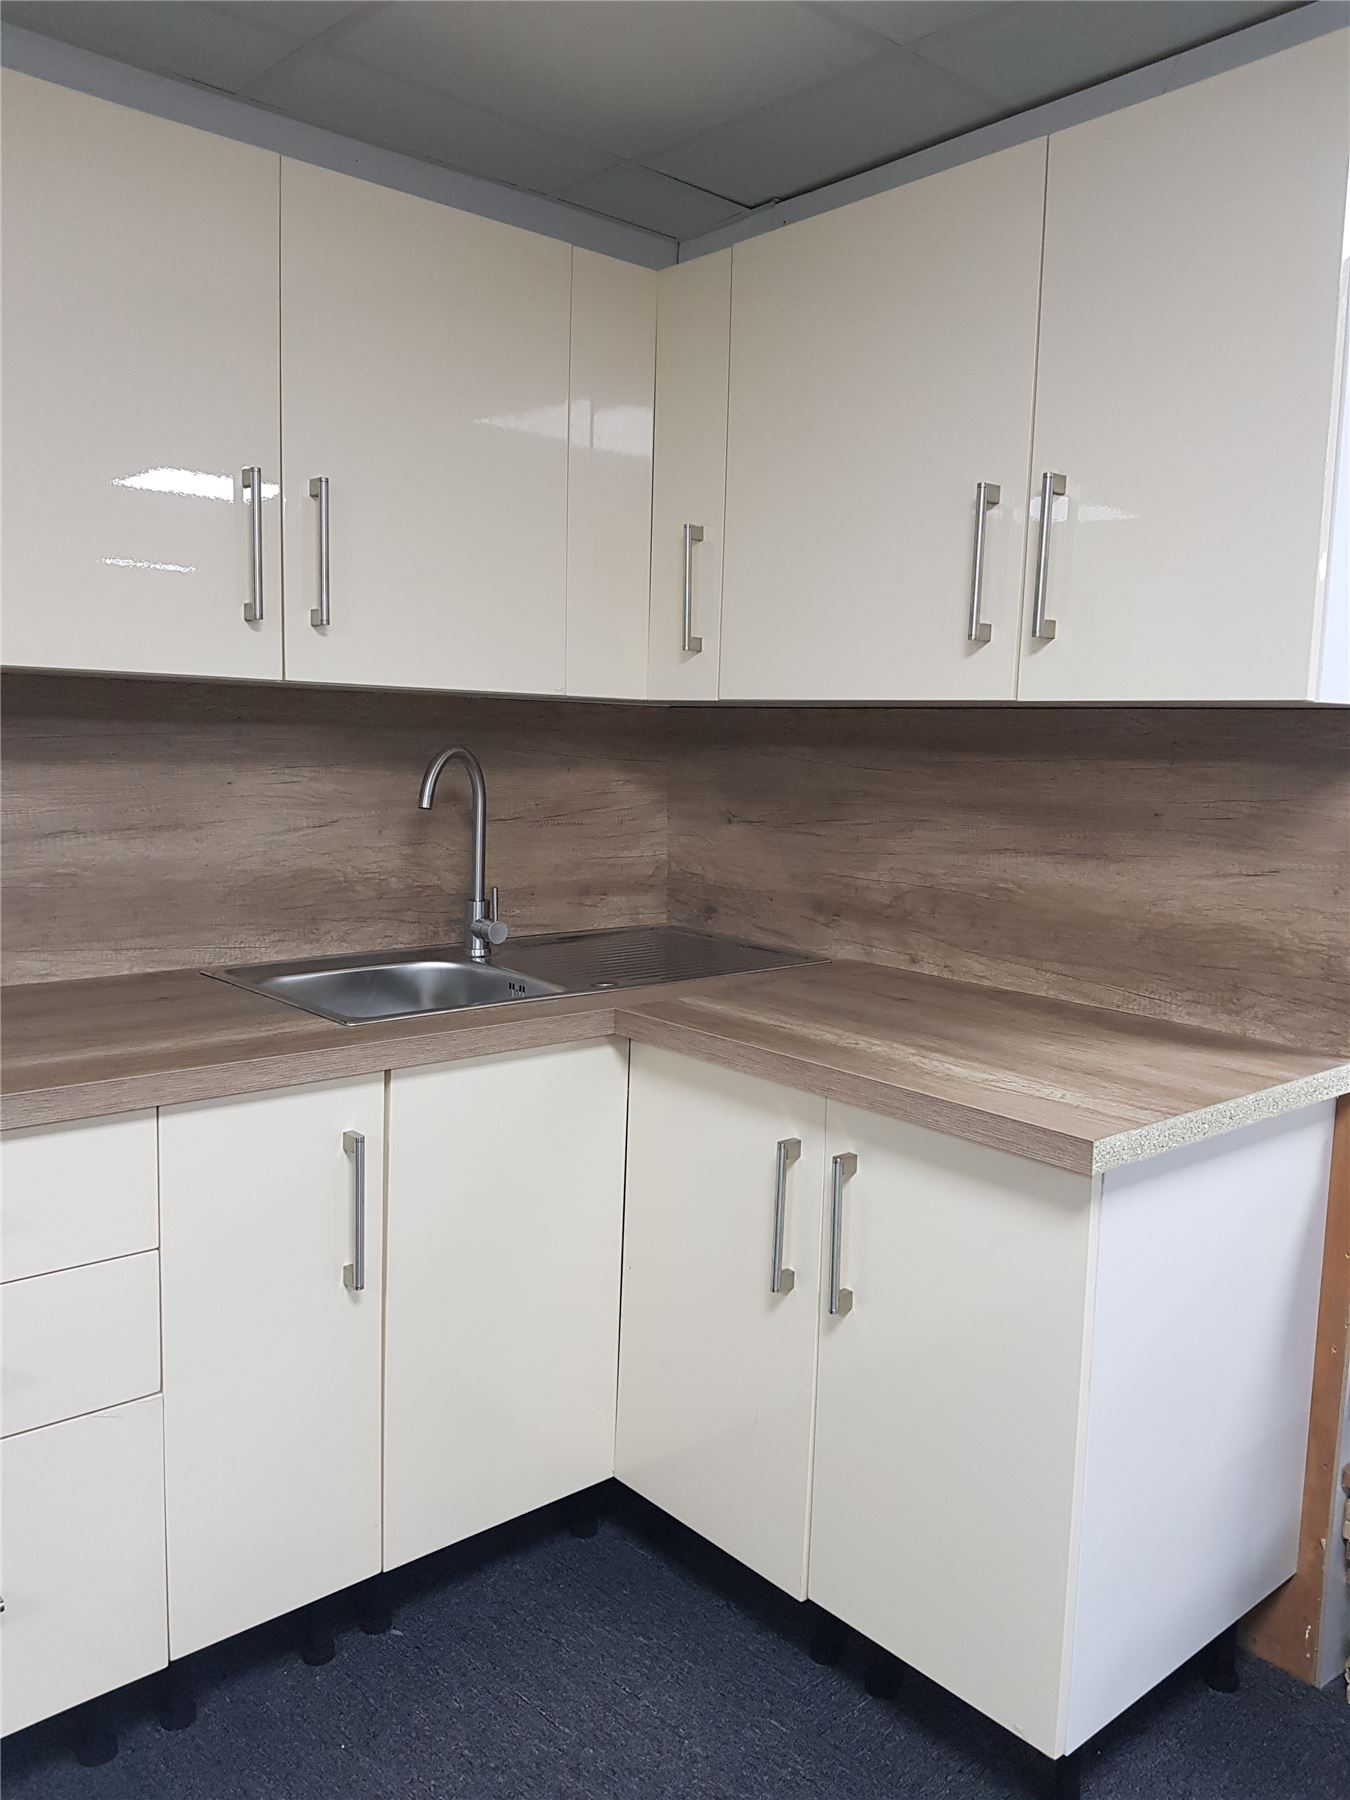 Cream High Gloss Kitchen Wall Base Units Carcass Cabinet Set Soft Close Doors Ebay